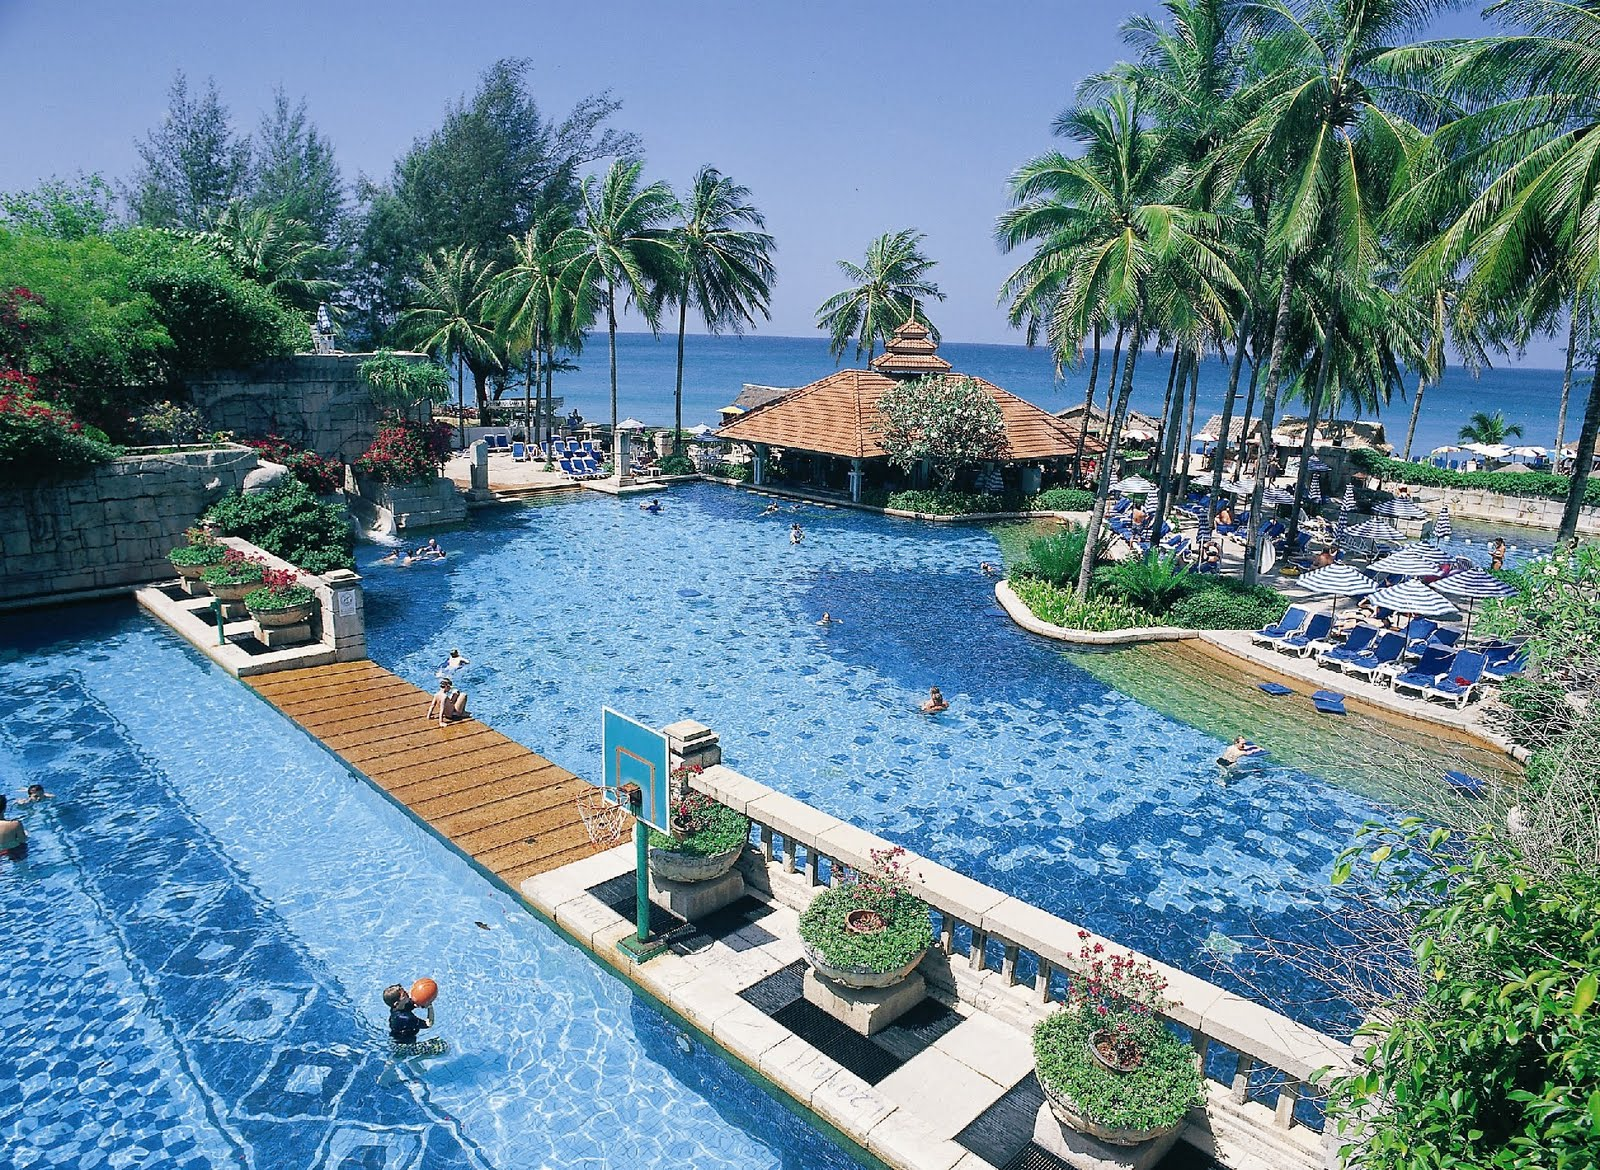 Go To Vacation: Looking For Resort In Phuket Thailand